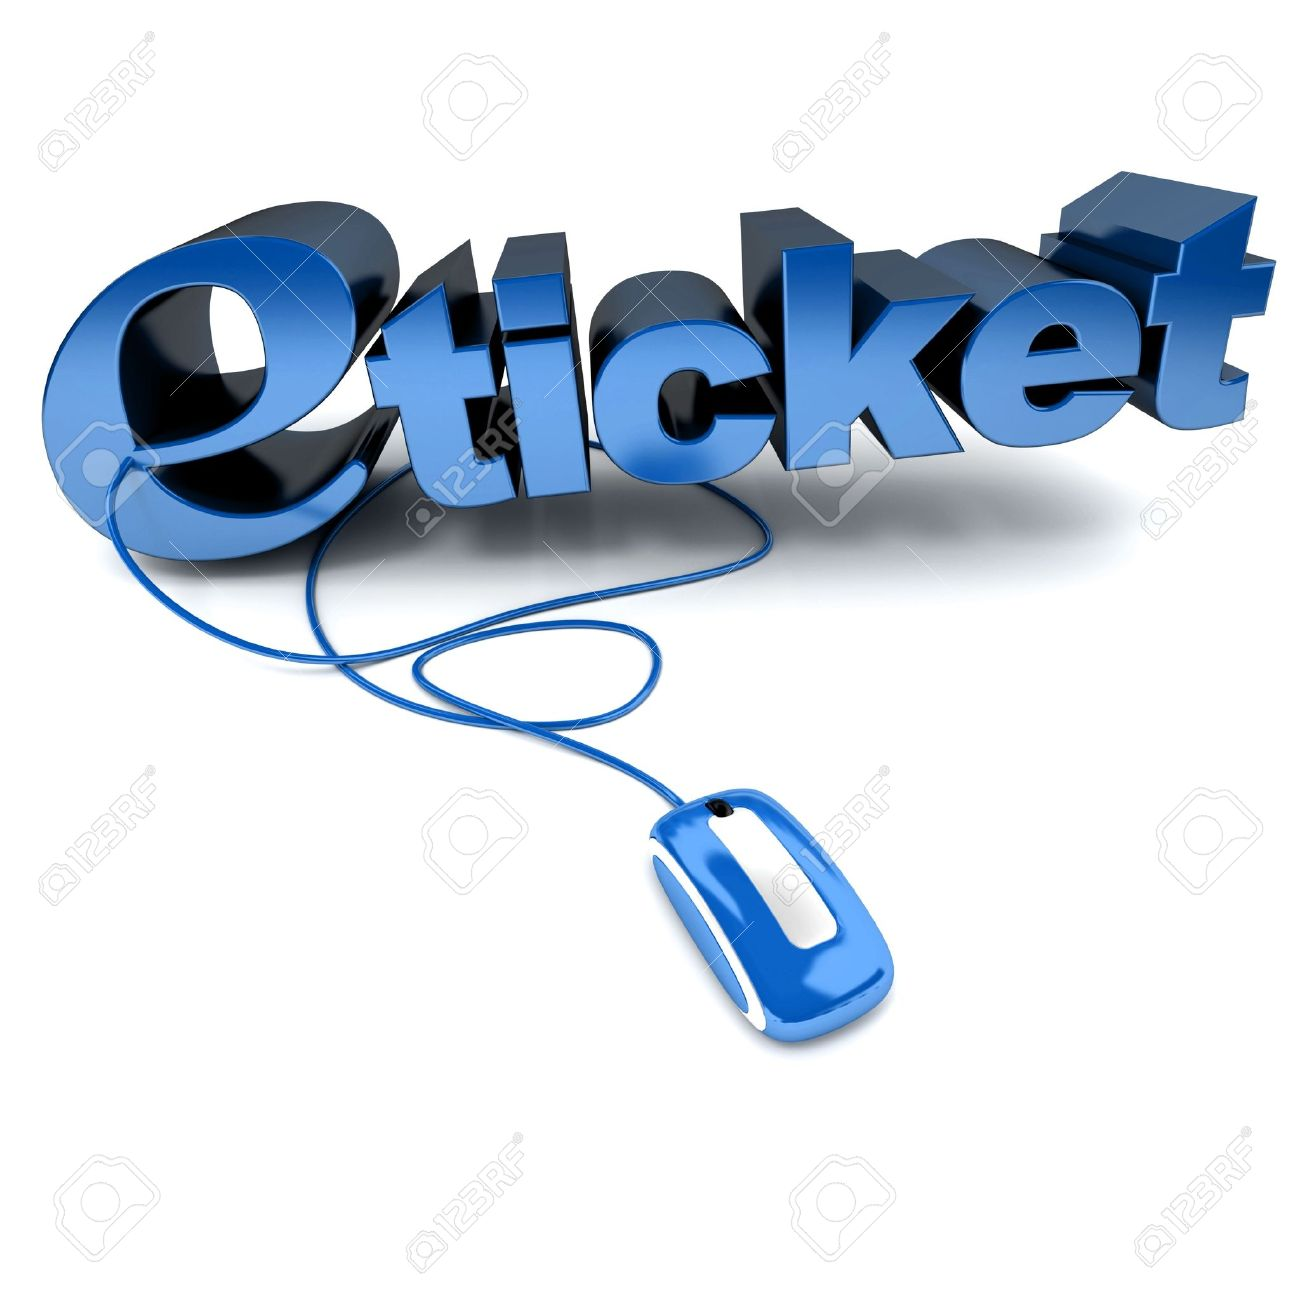 Blue And White 3D Illustration Of The Word Eticket Connected – Ticket Word